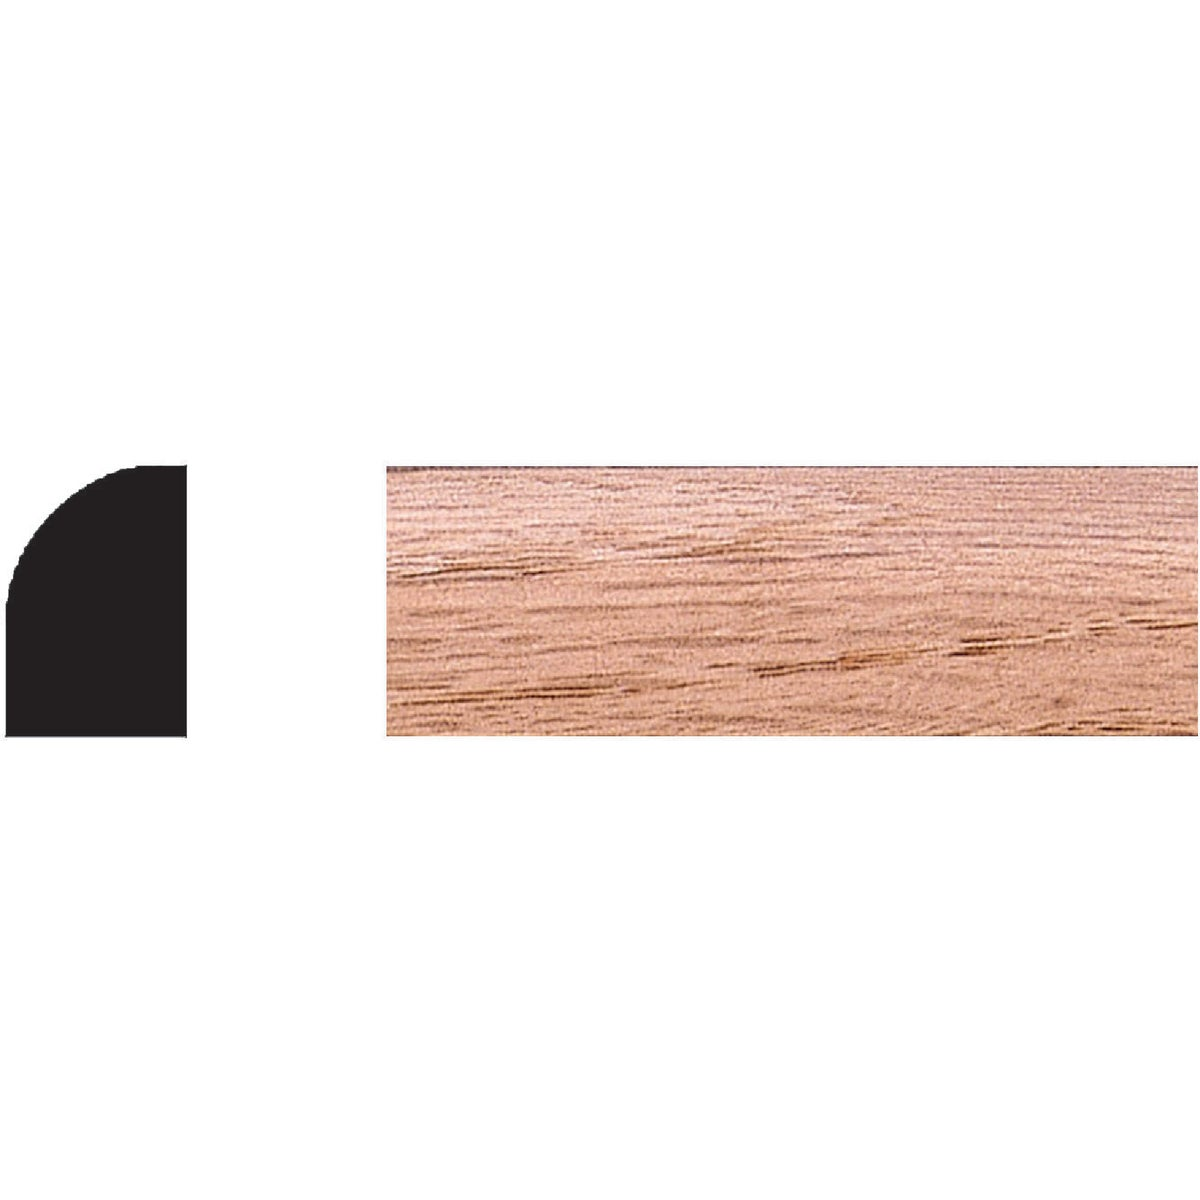 "1/2X3/4""X8' OAK SHOE - 9550 by House Of Fara Inc"